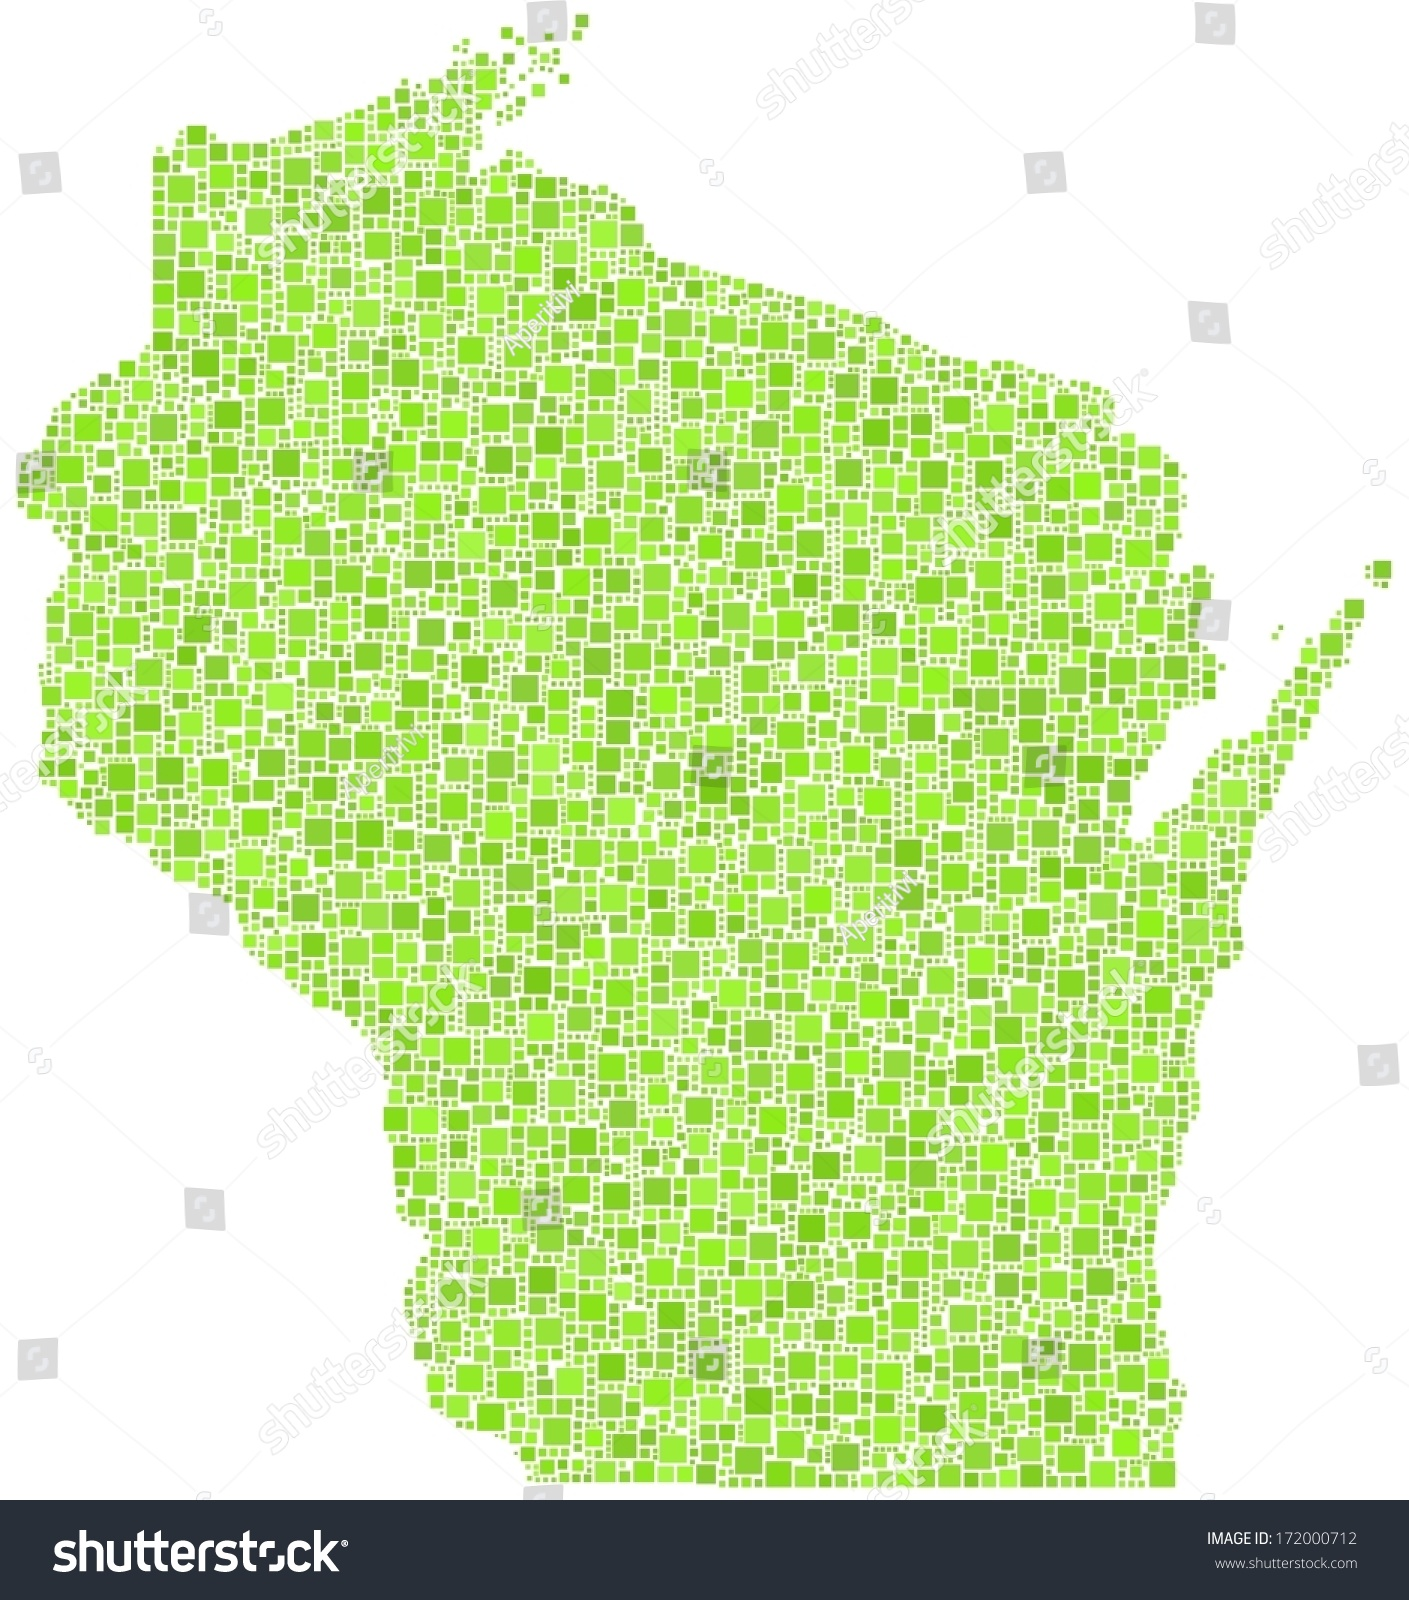 Map Of Wisconsin In Usa Wisconsin Wikipedia Map Of Deregulated